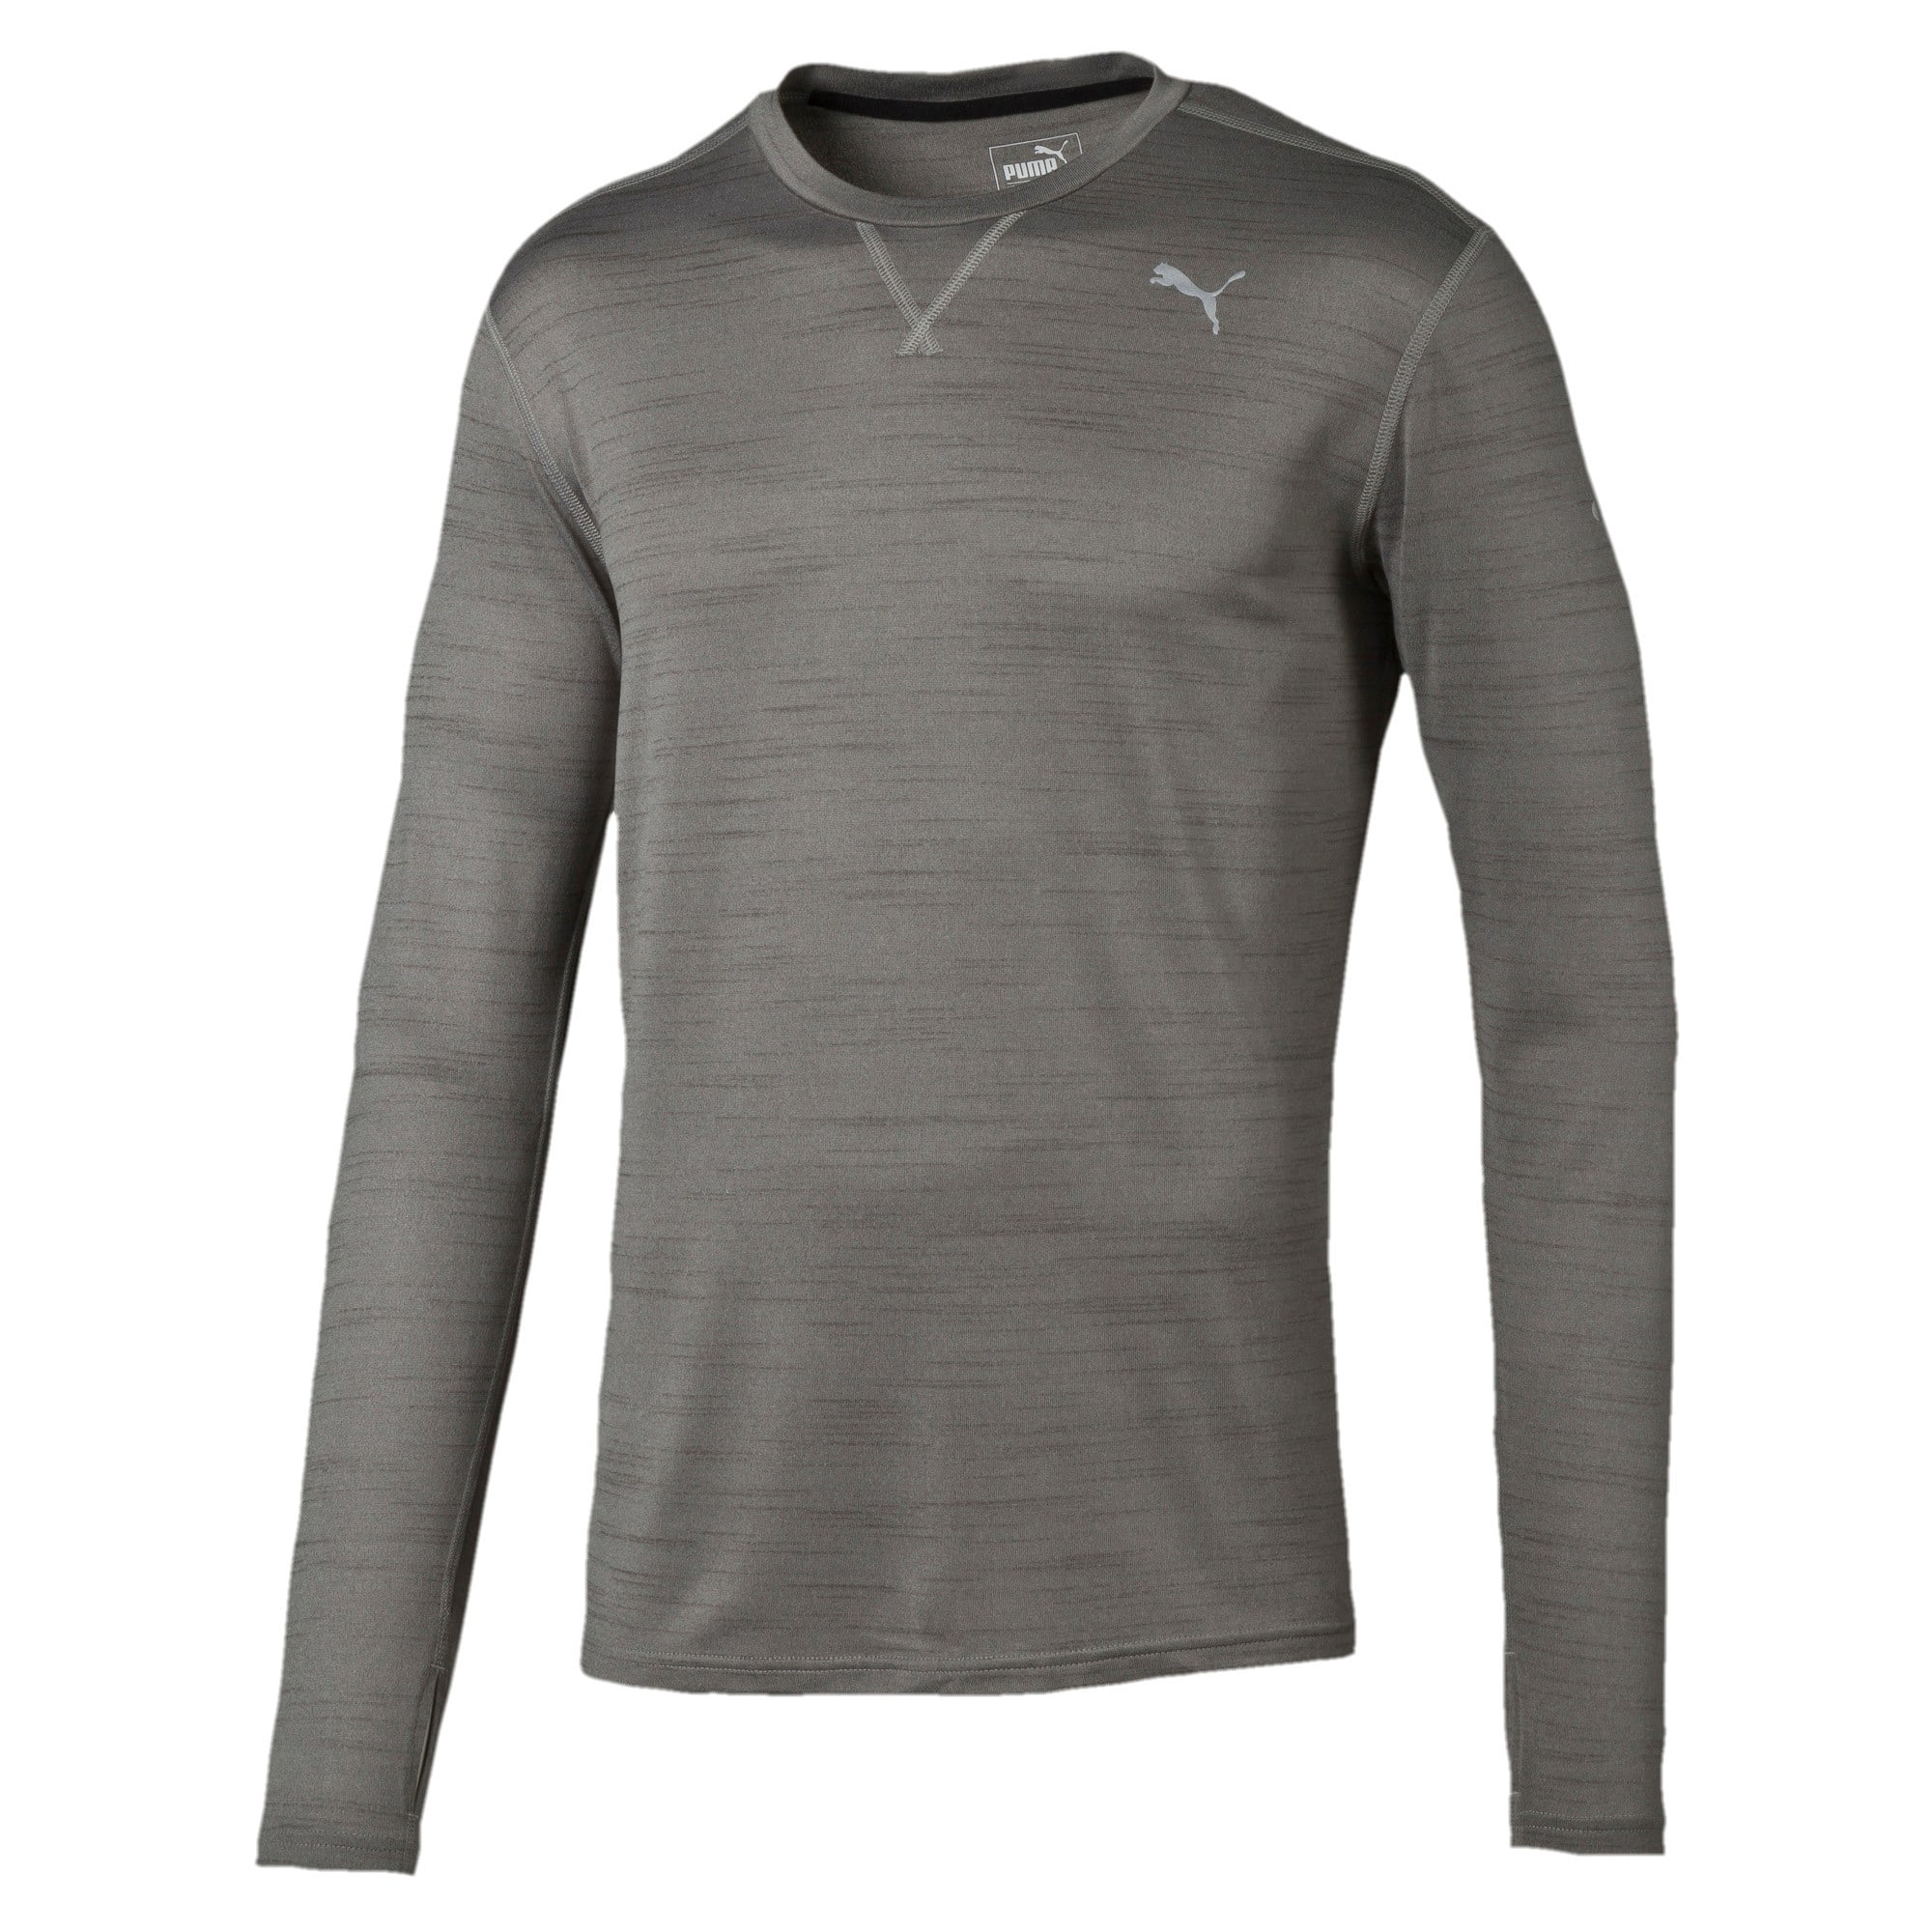 Thumbnail 4 of Rebel-Run L S Tee, Medium Gray Heather, medium-IND